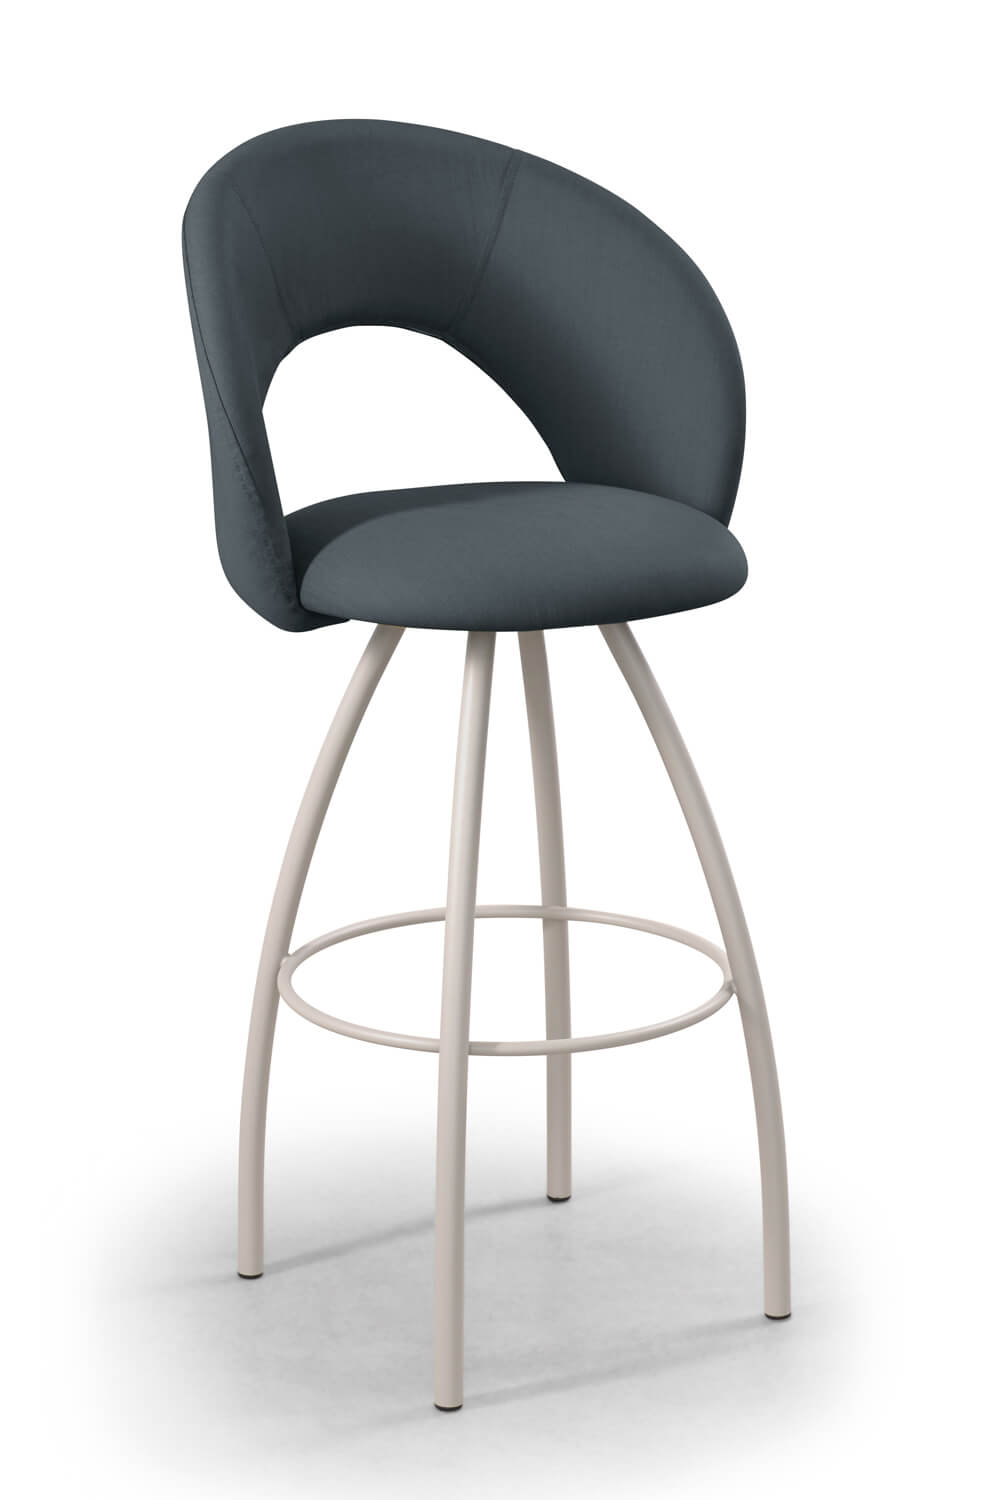 Awesome Biscotti Swivel Stool Inzonedesignstudio Interior Chair Design Inzonedesignstudiocom